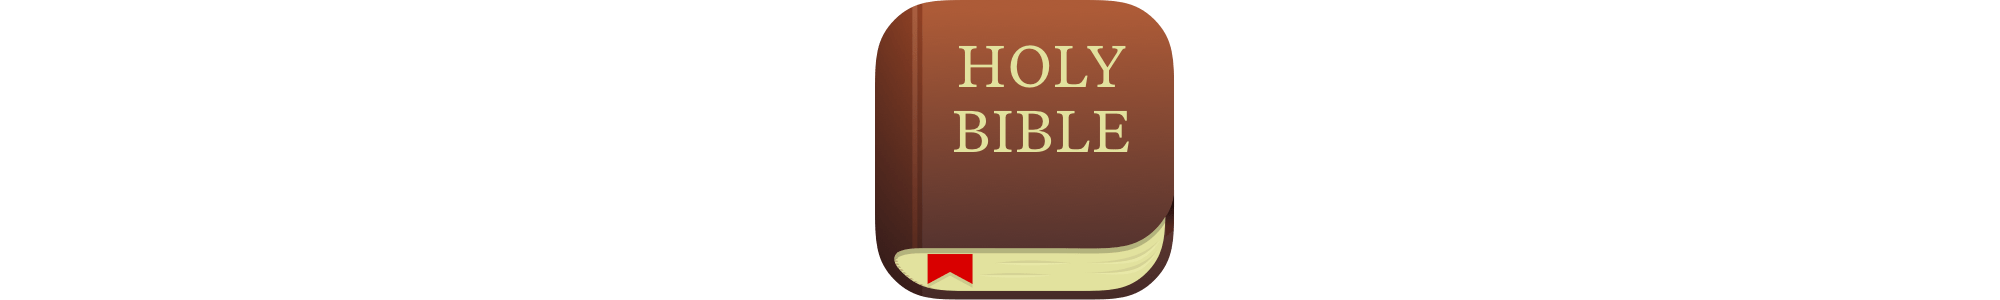 bible-icon.png